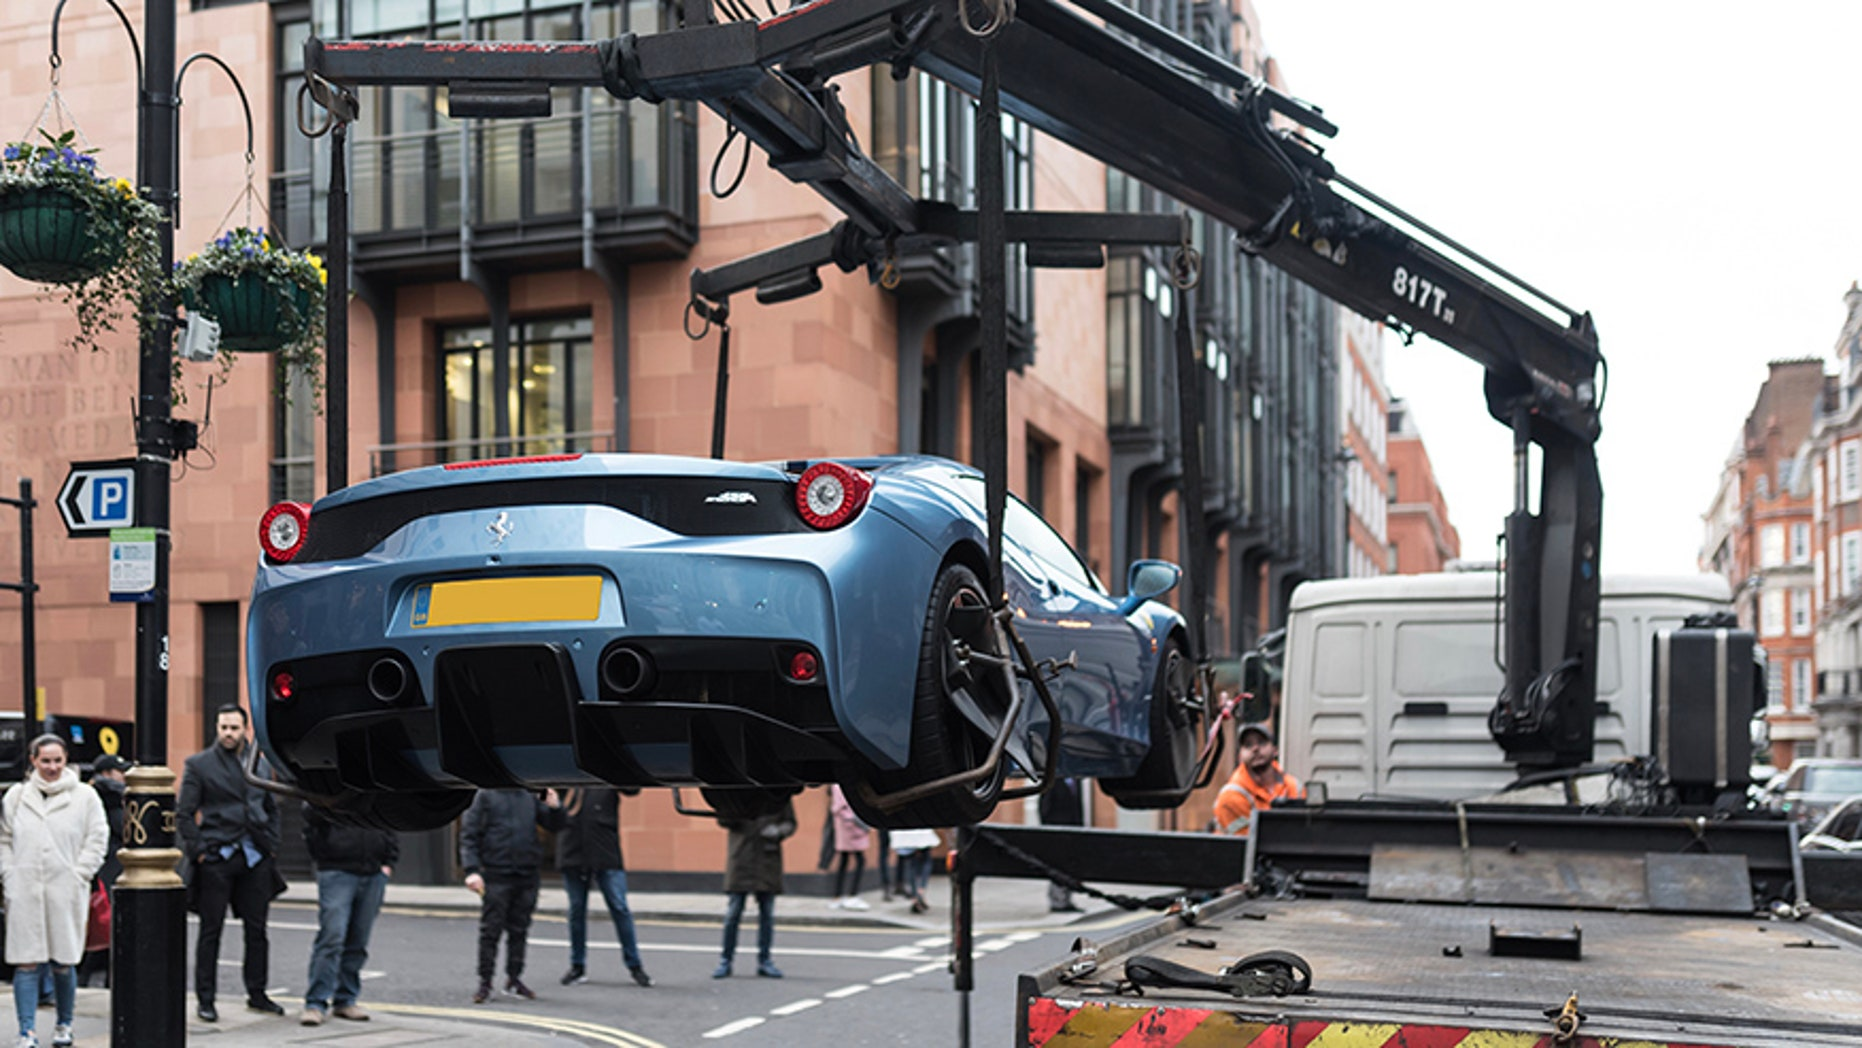 """This is the moment cops in London seized a limited edition Ferrari worth half a million pounds - because its young owner didn't have car insurance. See SWNS story SWFERRARI; Stunned onlookers in posh Mayfair watched the bizarre scene unfold on Sunday afternoon as the Ferrari 458 Speciale Aperta, one of only 499 ever made, was lifted onto a towing truck. Cops said the driver was reported on suspicion of using the expensive car, which is even more sought-after because it is one of the few with a right-hand drive, without insurance. An eyewitness said:""""The young man was in a baby blue Ferrari worth probably around £600,000.""""He was driving in convoy through Mayfair with his dad who was in a Porsche 918."""""""